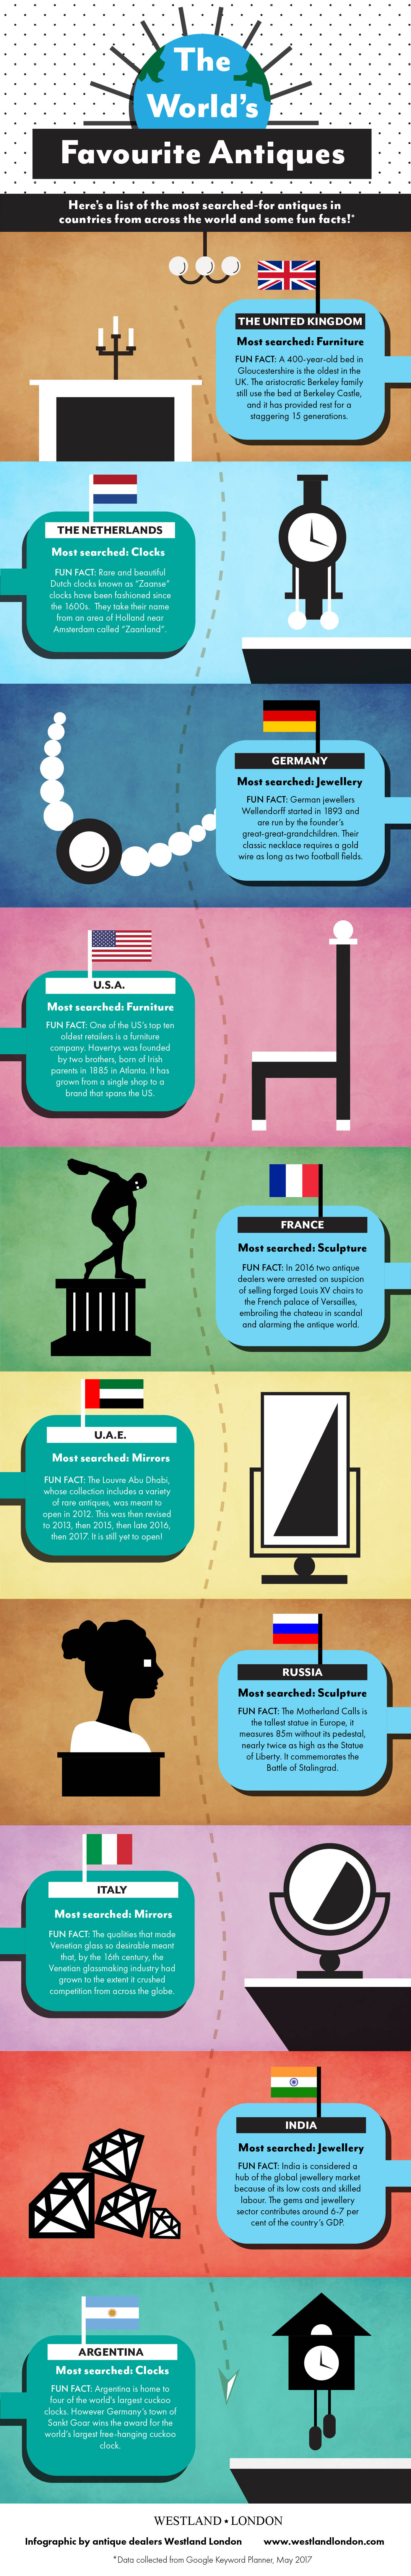 The World's Favourite Antiques: An Infographic